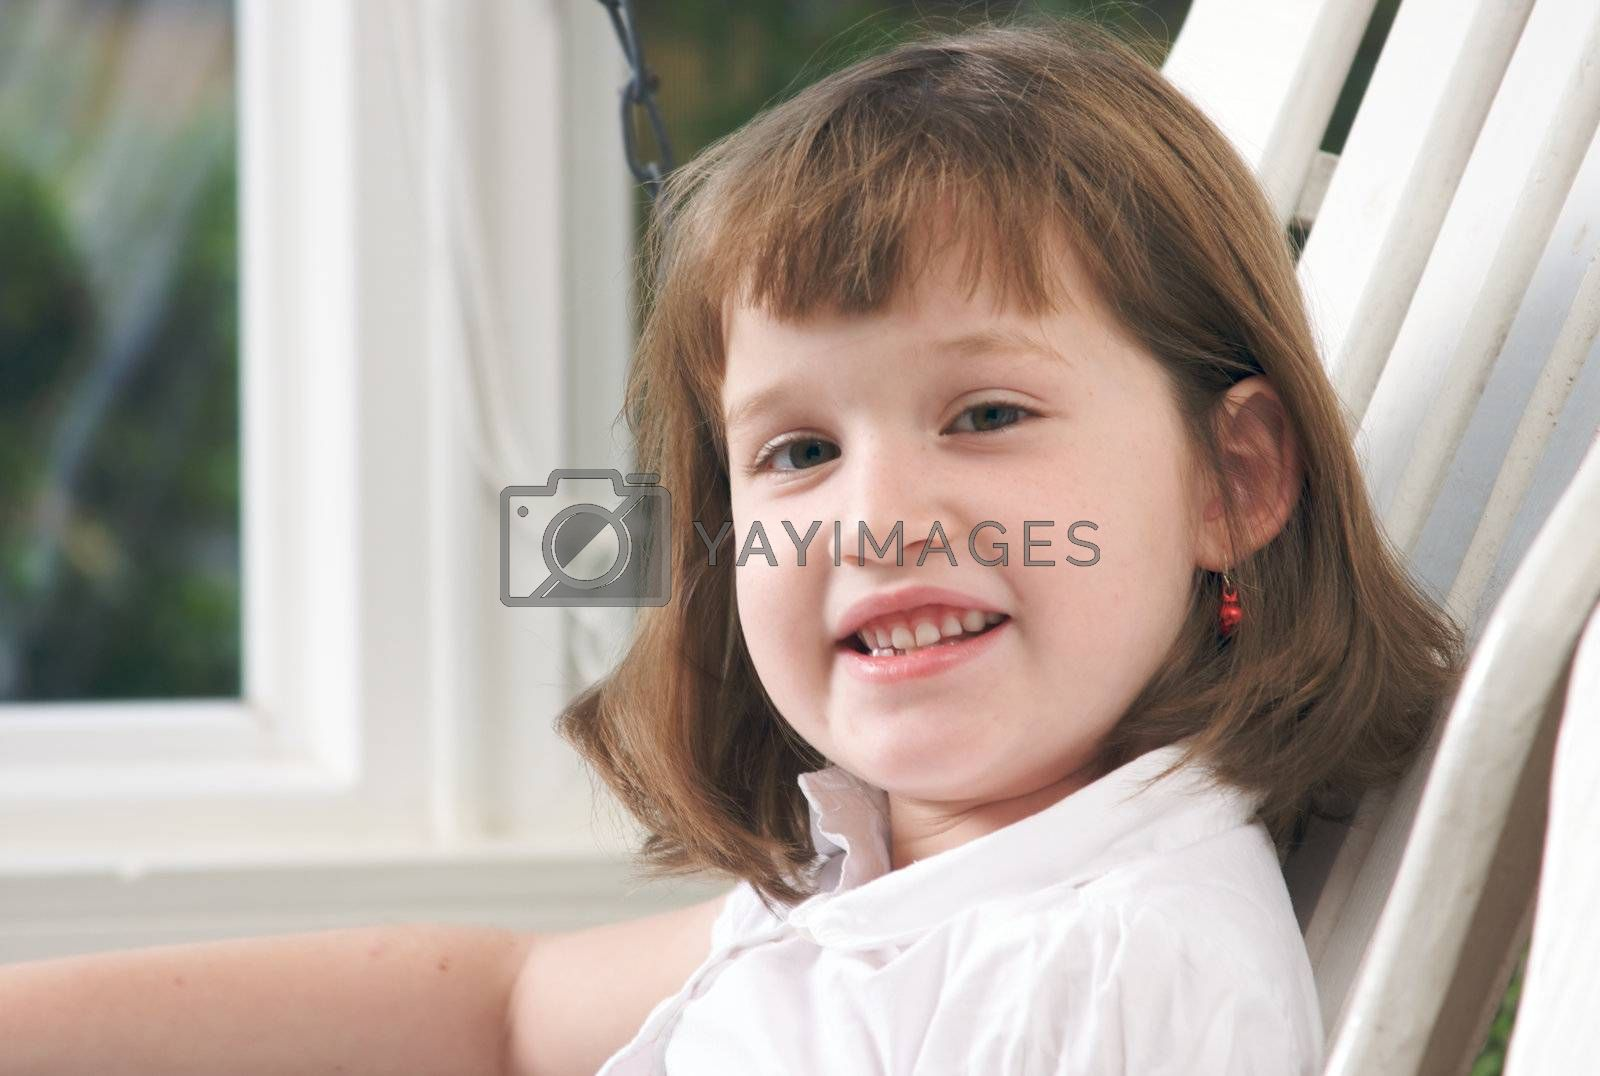 Adorable Girl Poses for a Fun Portrait